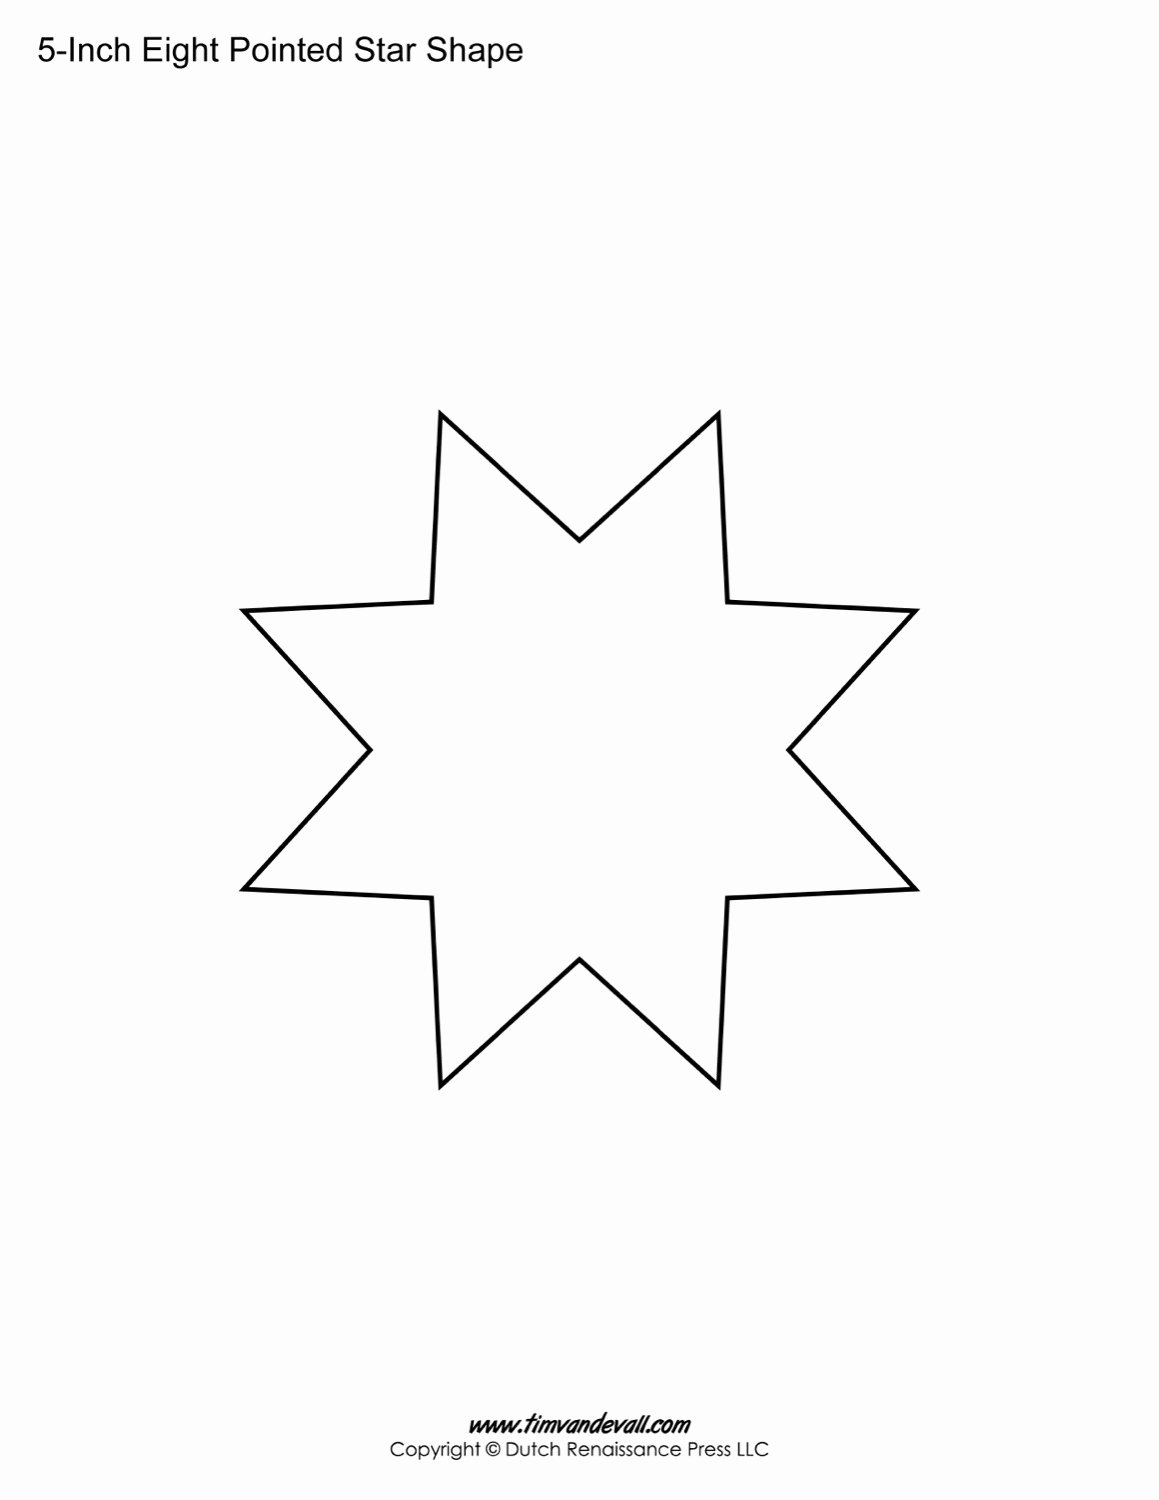 8 Point Star Template Inspirational Free Eight Pointed Star Shapes